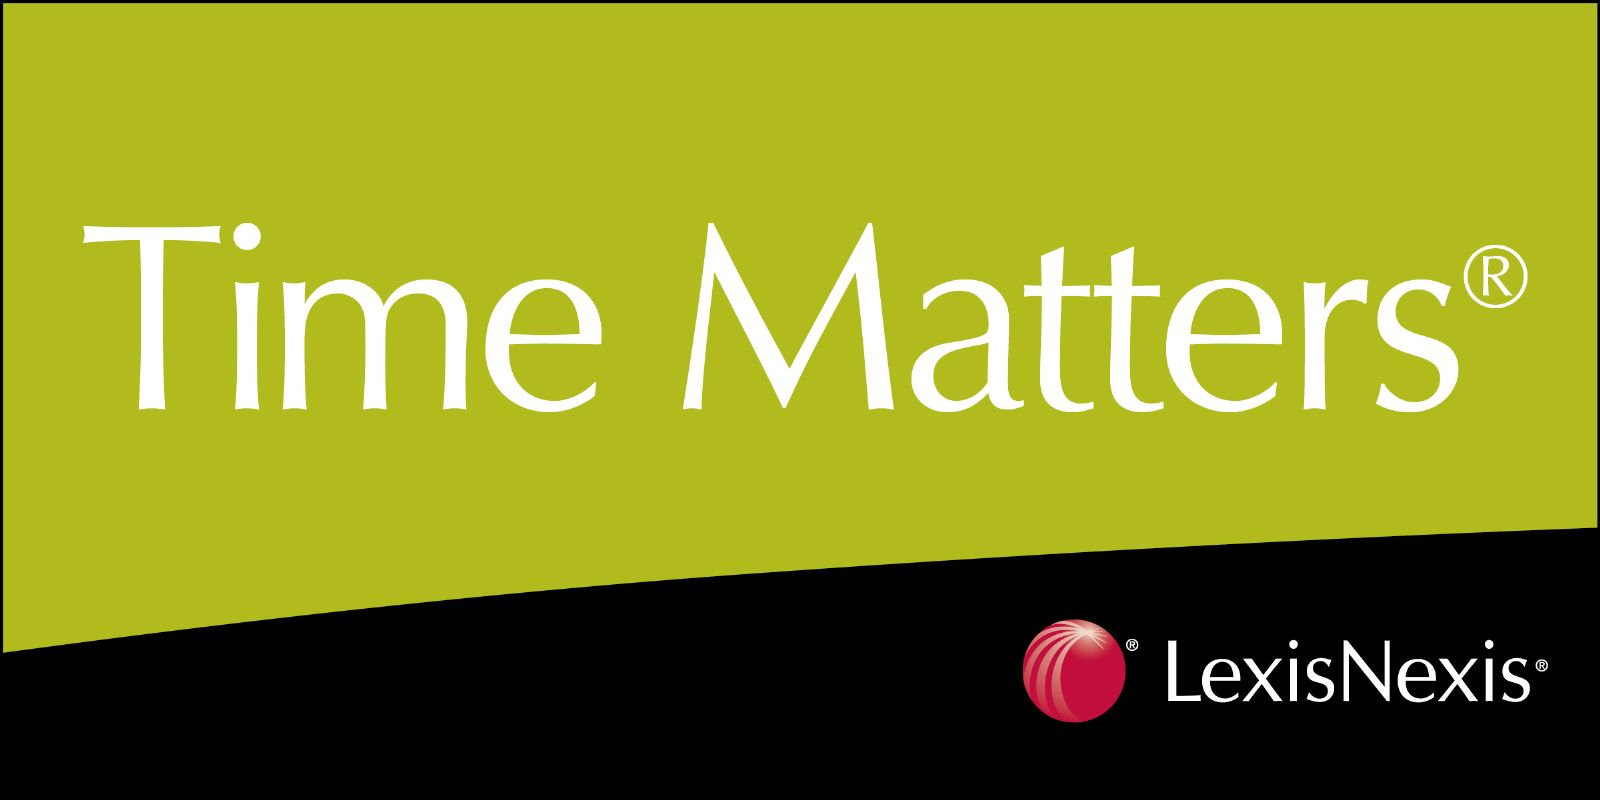 V isit the Time Matters website .